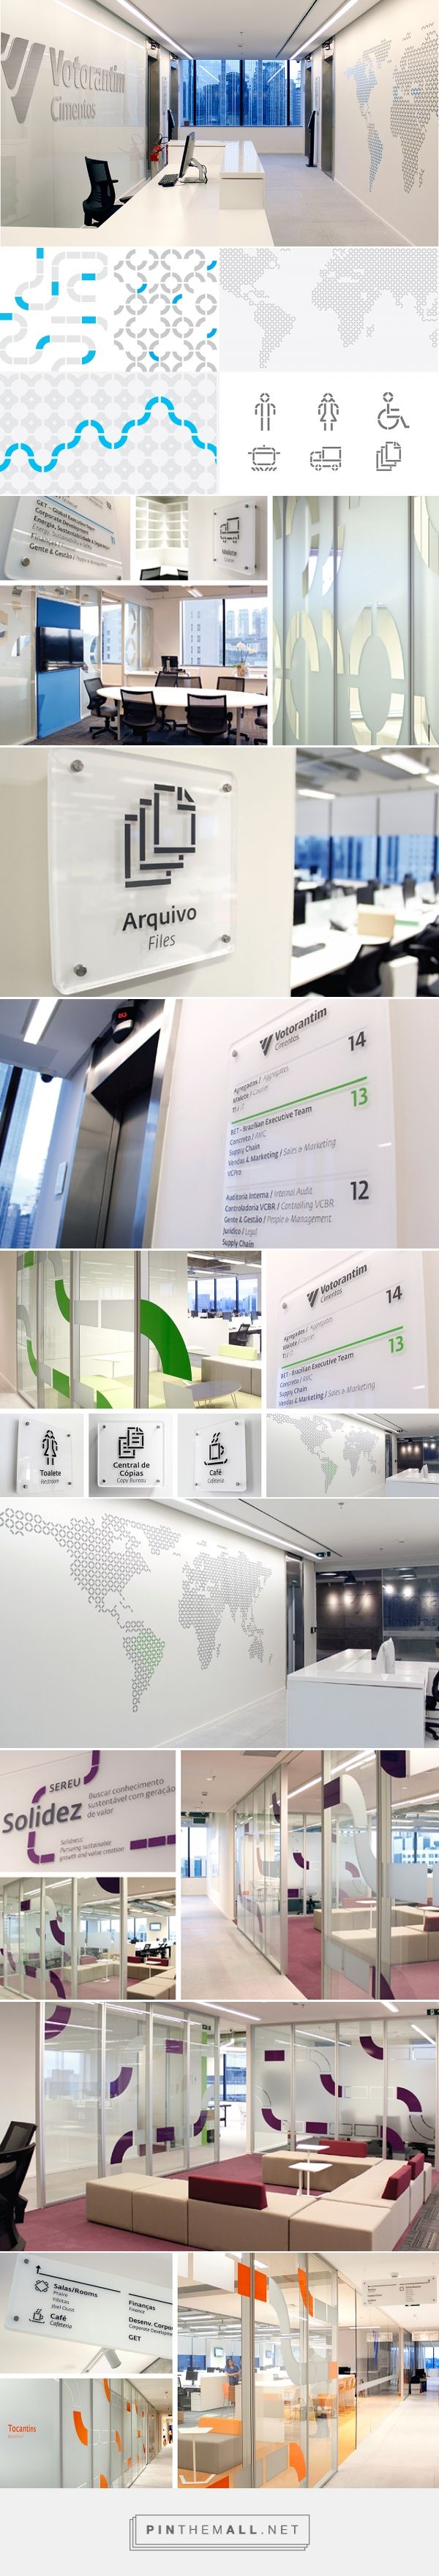 Votorantim Cimentos HQ on Behance... - a grouped images picture - Pin Them All